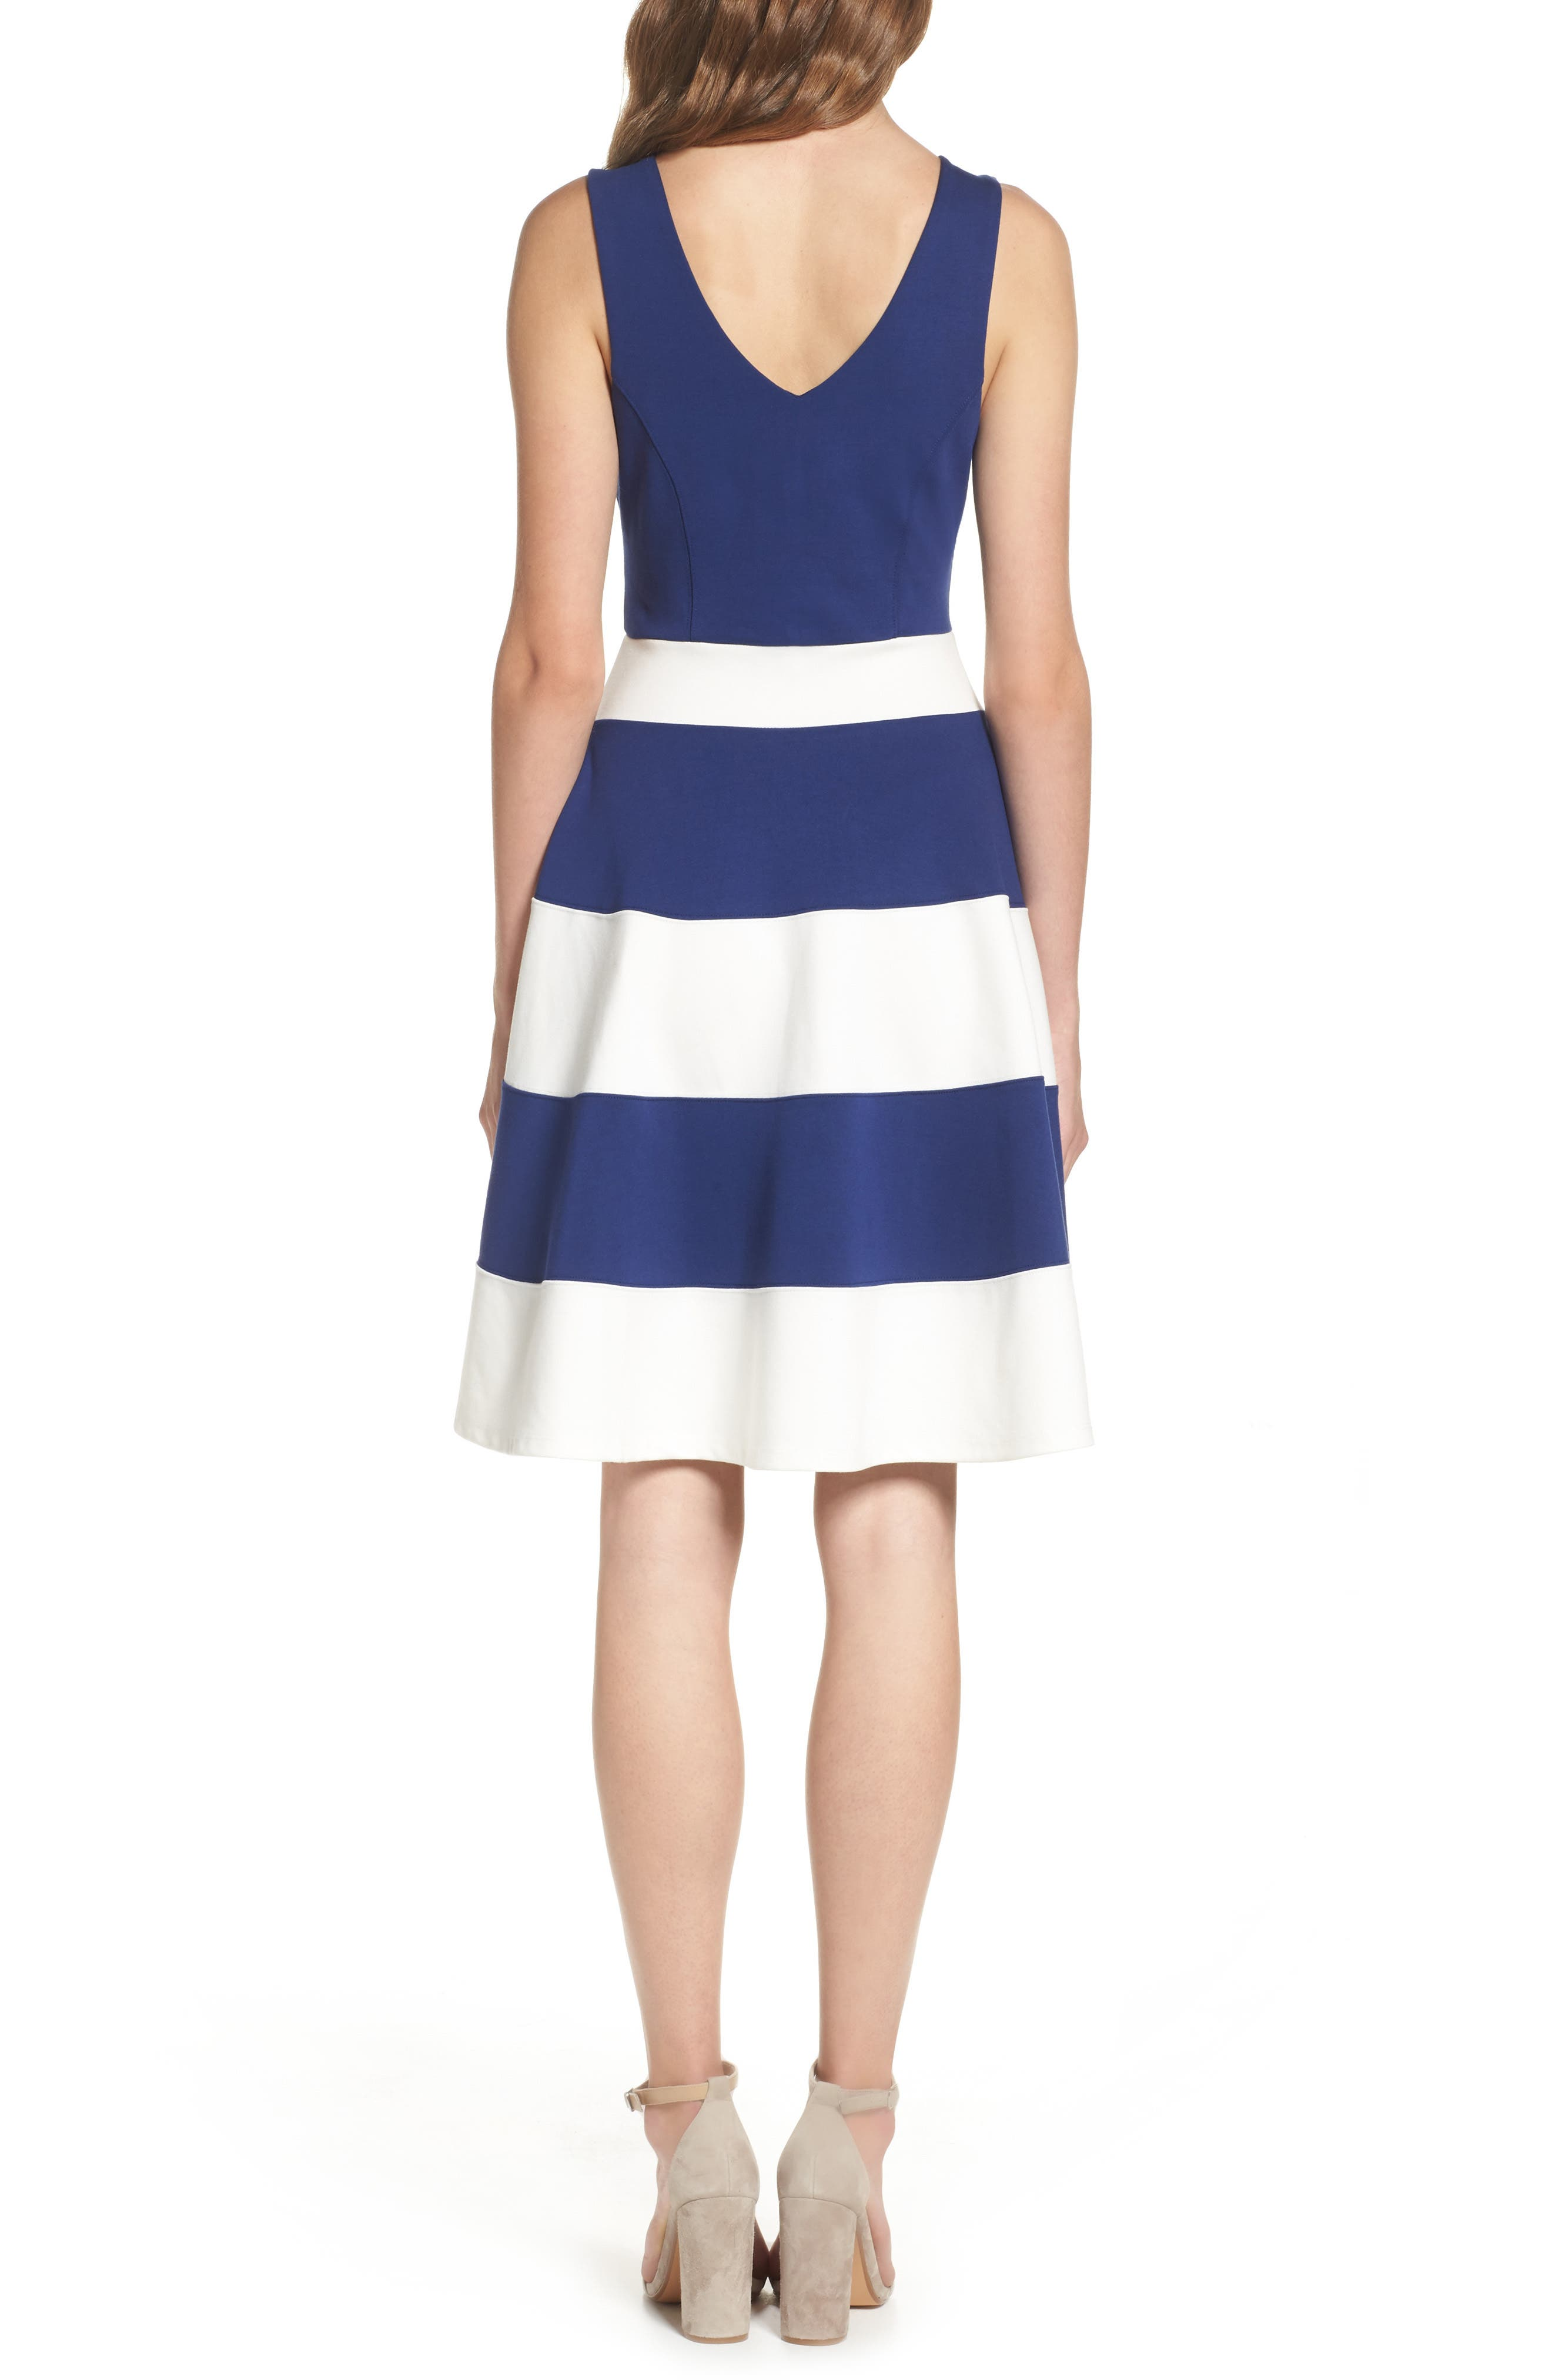 Joice Sleeveless Fit & Flare Dress,                             Alternate thumbnail 2, color,                             Navy/ White